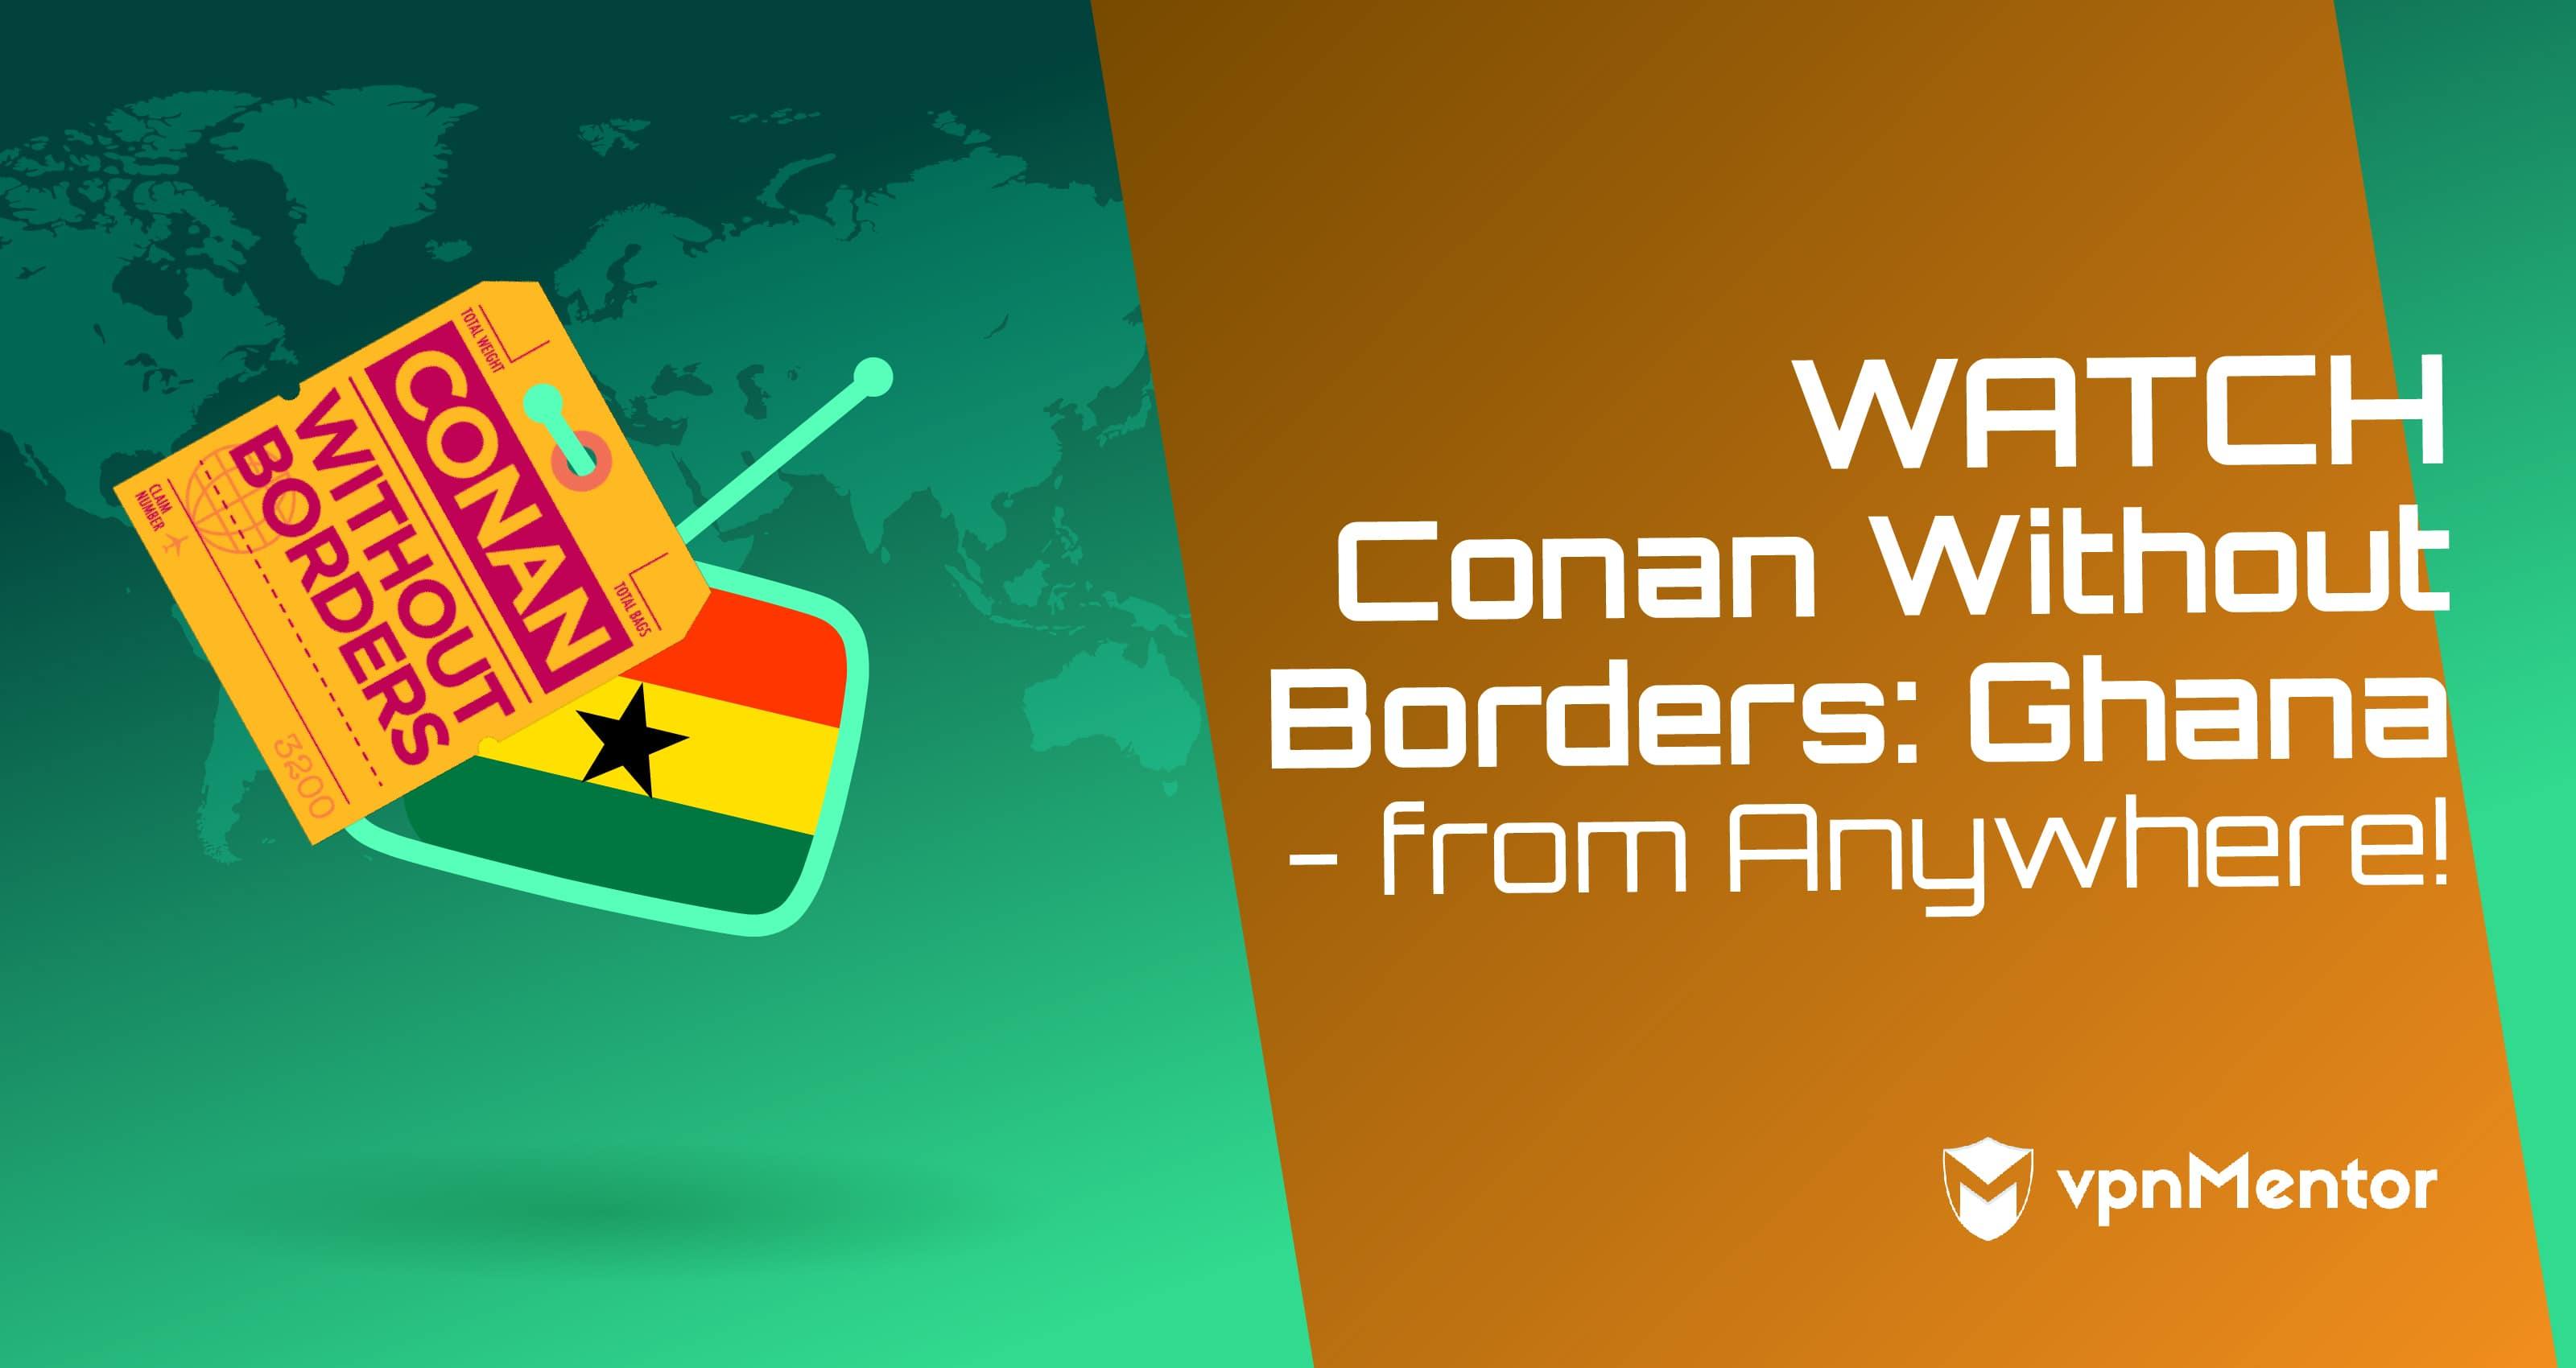 Watch Conan Without Borders: Ghana Anywhere